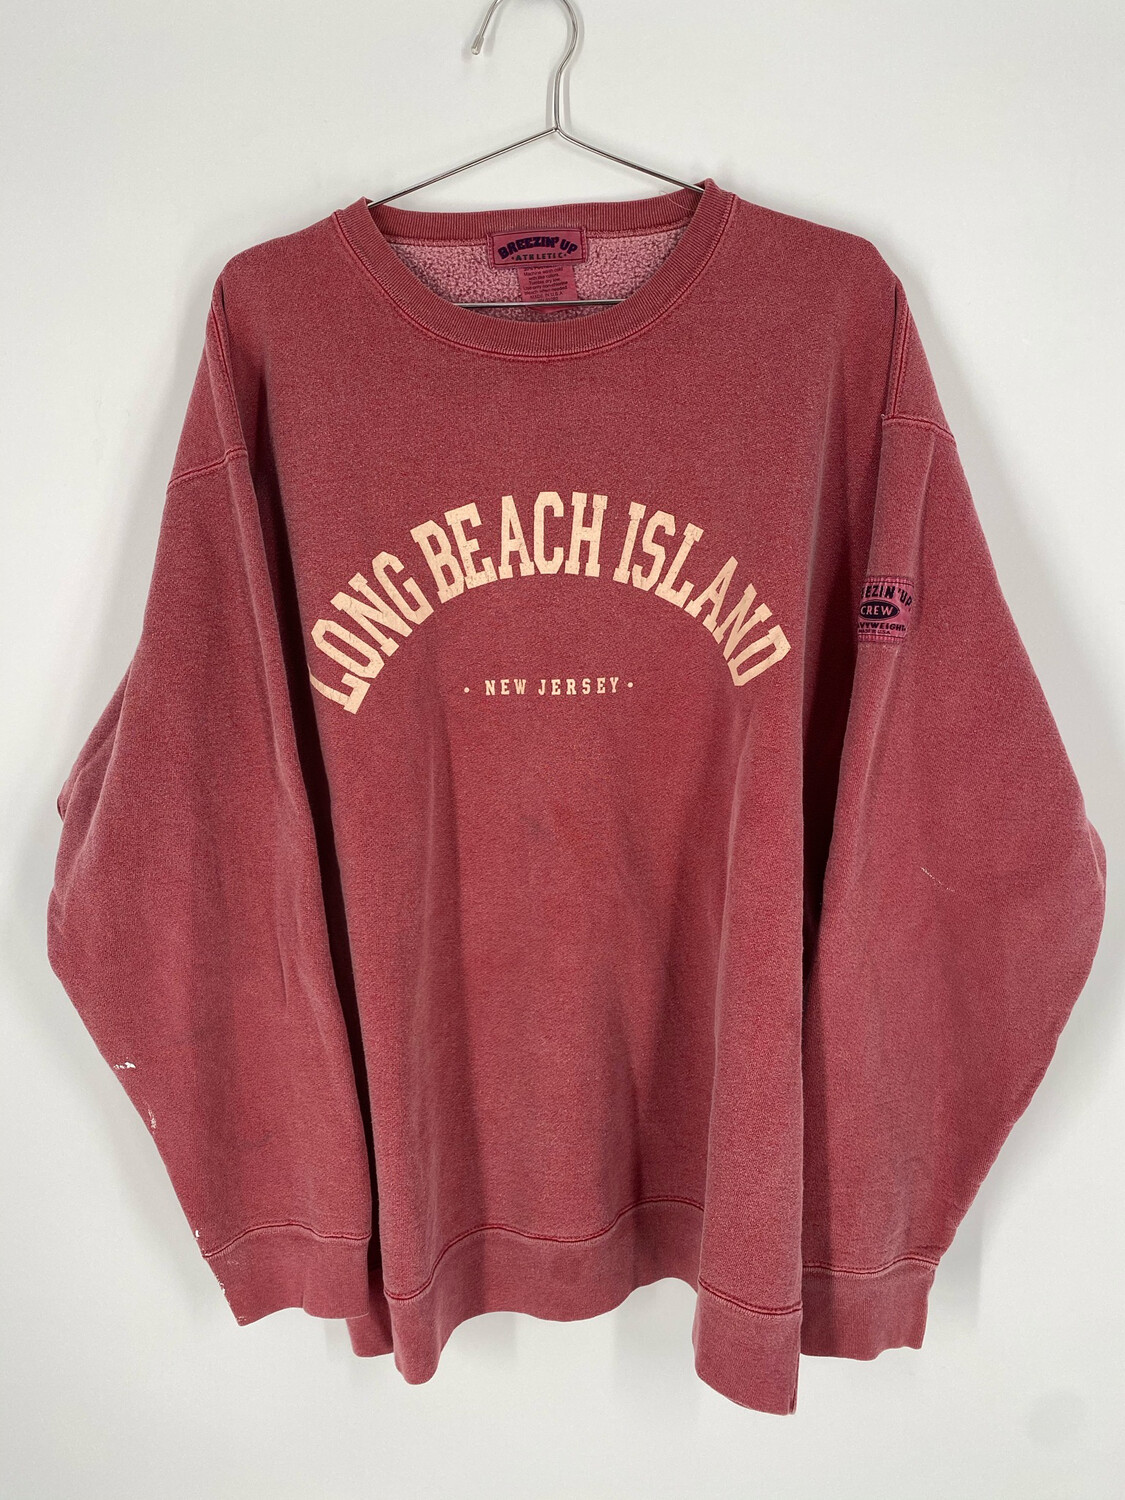 Long Beach Island New Jersey Vintage Crewneck Size L